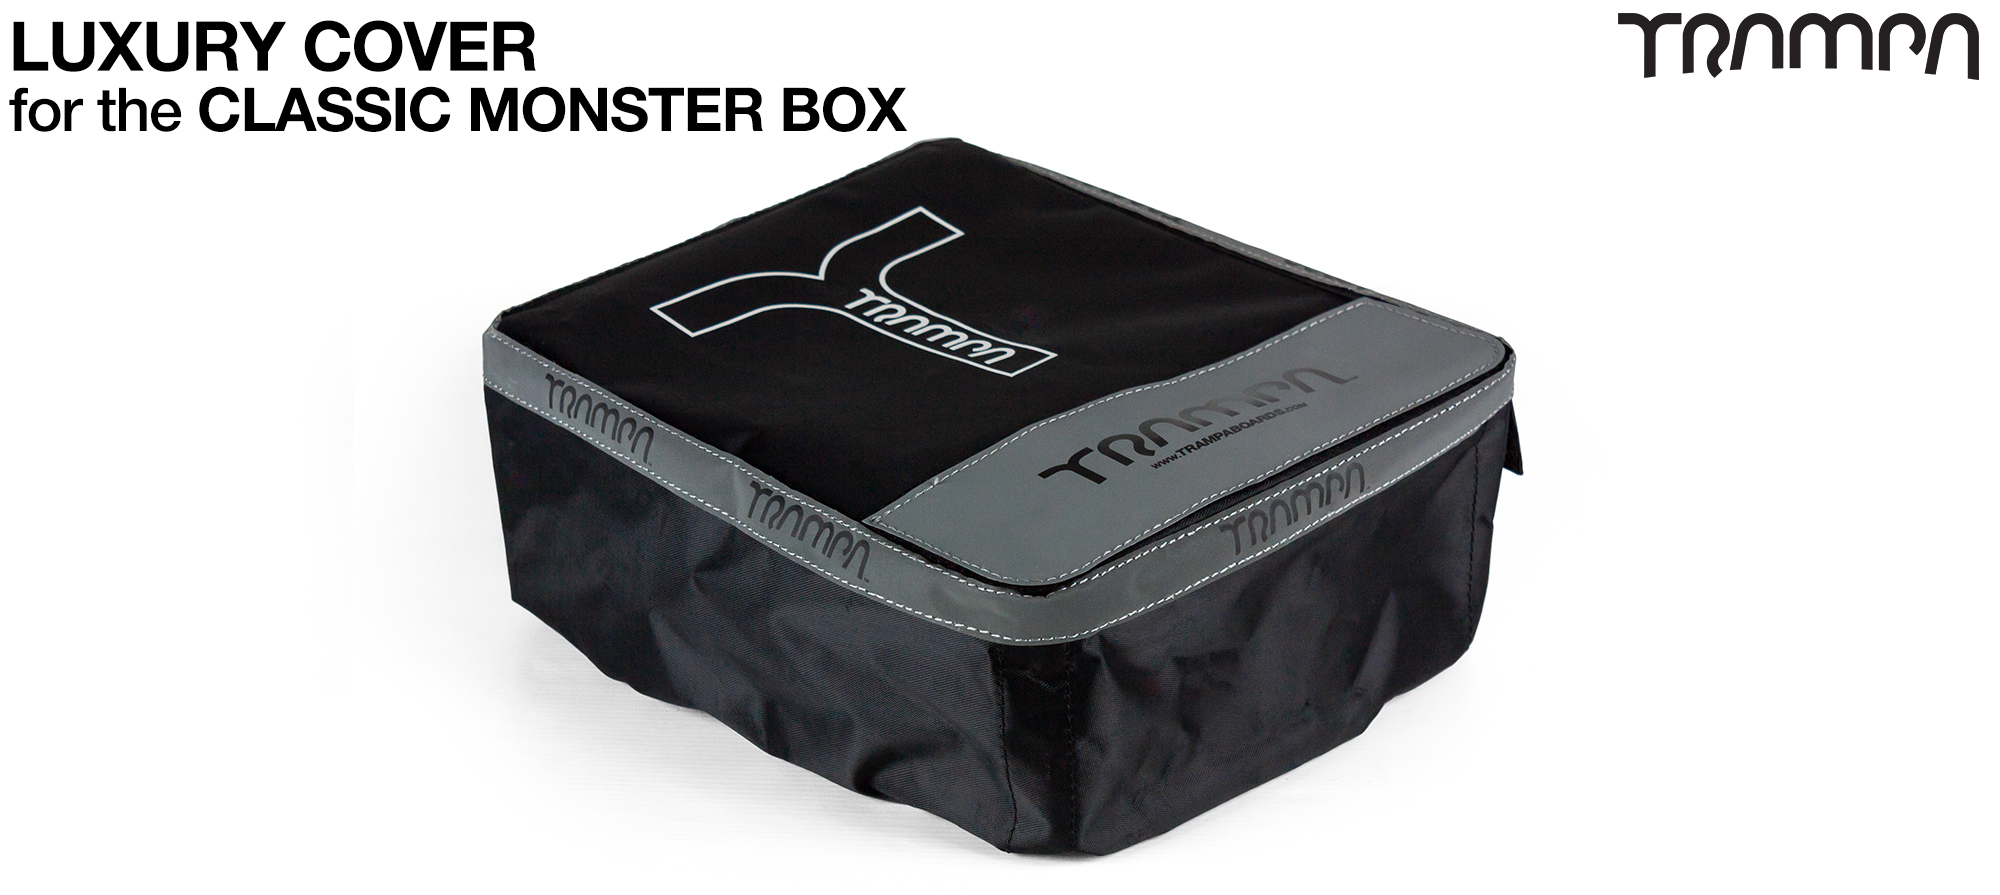 HEAVY DUTY CLASSIC Monster Box protective Cover with Inspection pit & tool Pockets... (COPY)